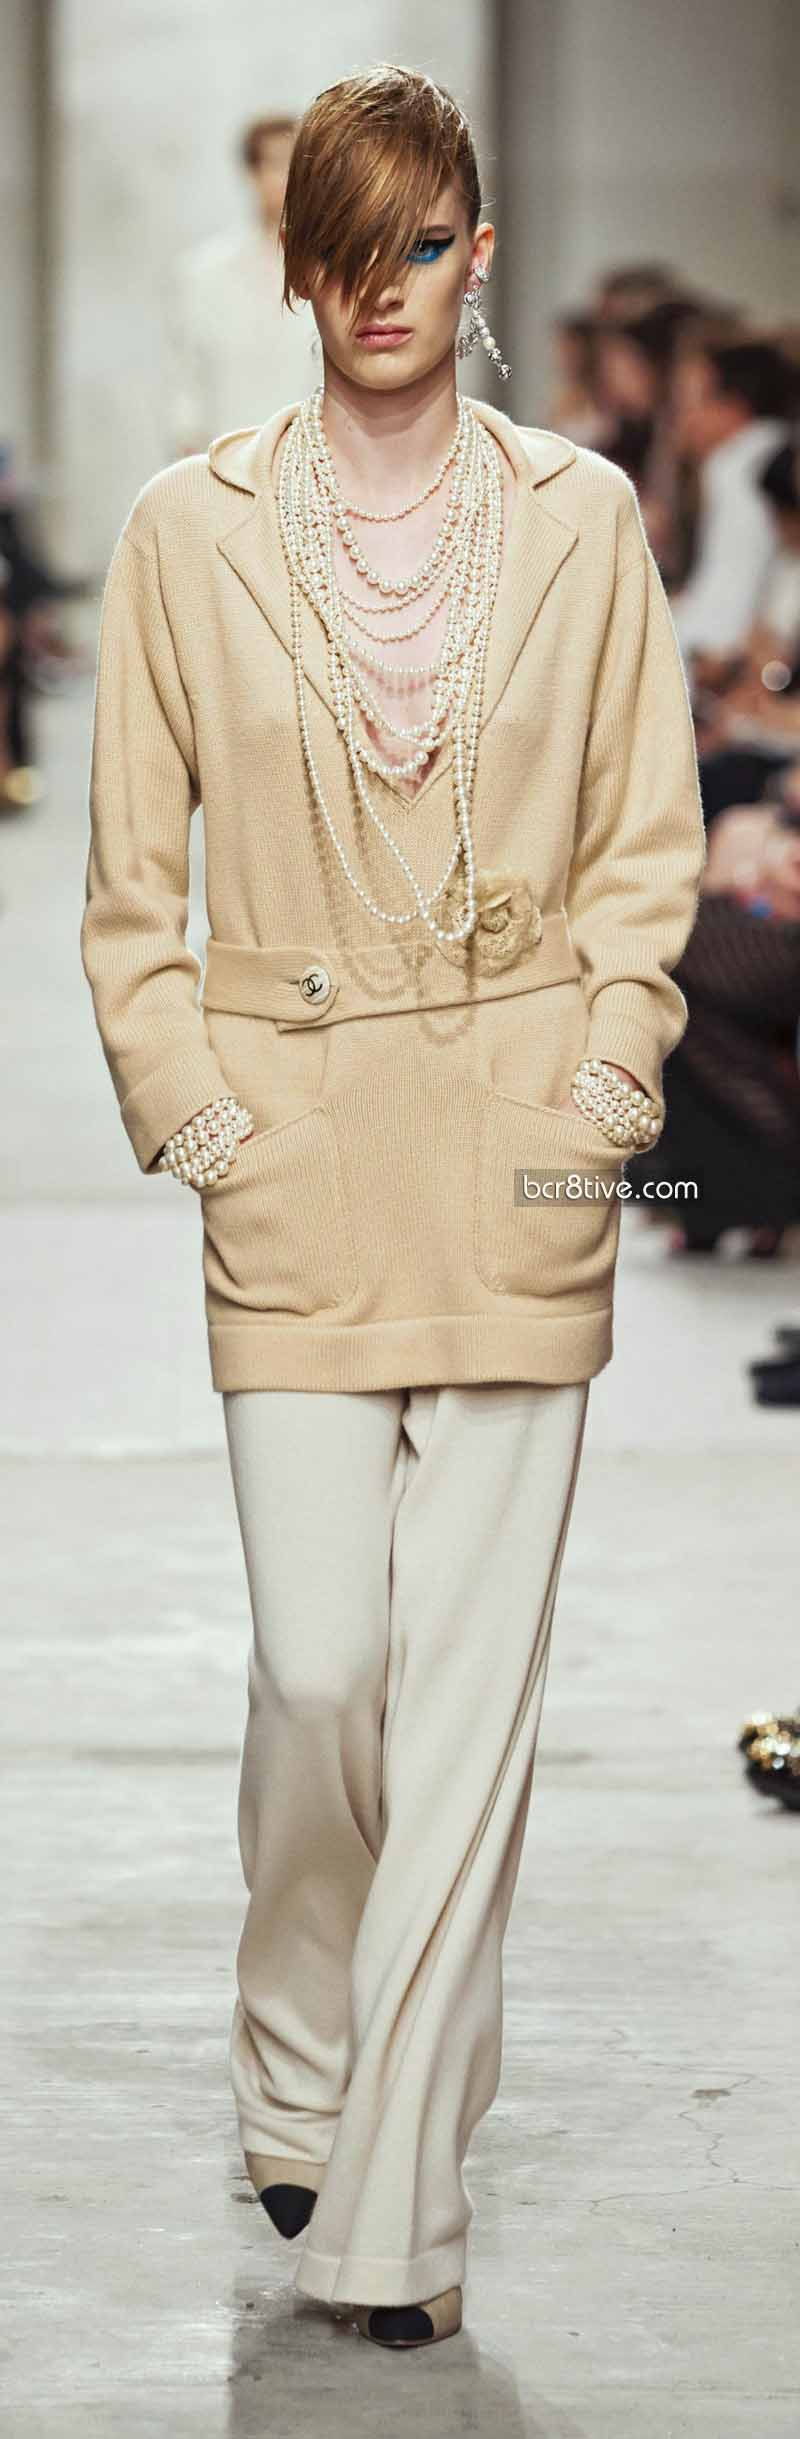 Chanel Resort 2013-14